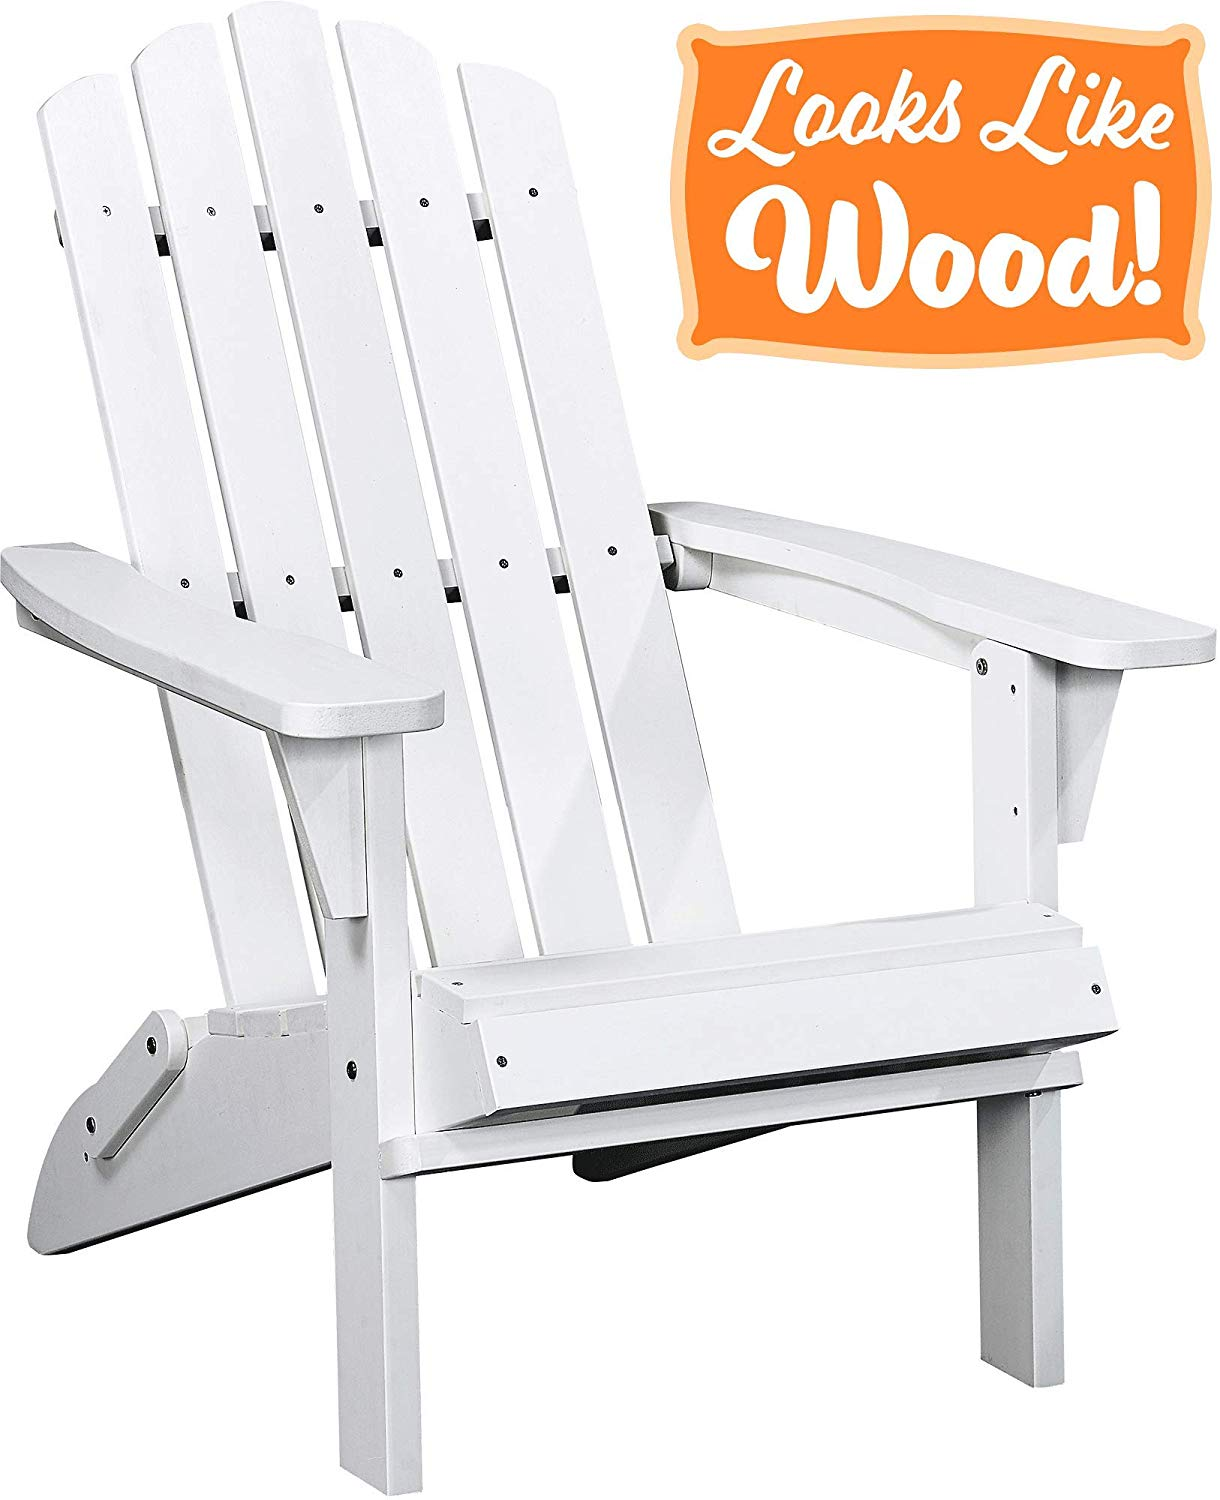 PolyTEAK Classic Folding Poly Adirondack Chair, Powder White - Adult-Size, Weather Resistant, Made from Plastic